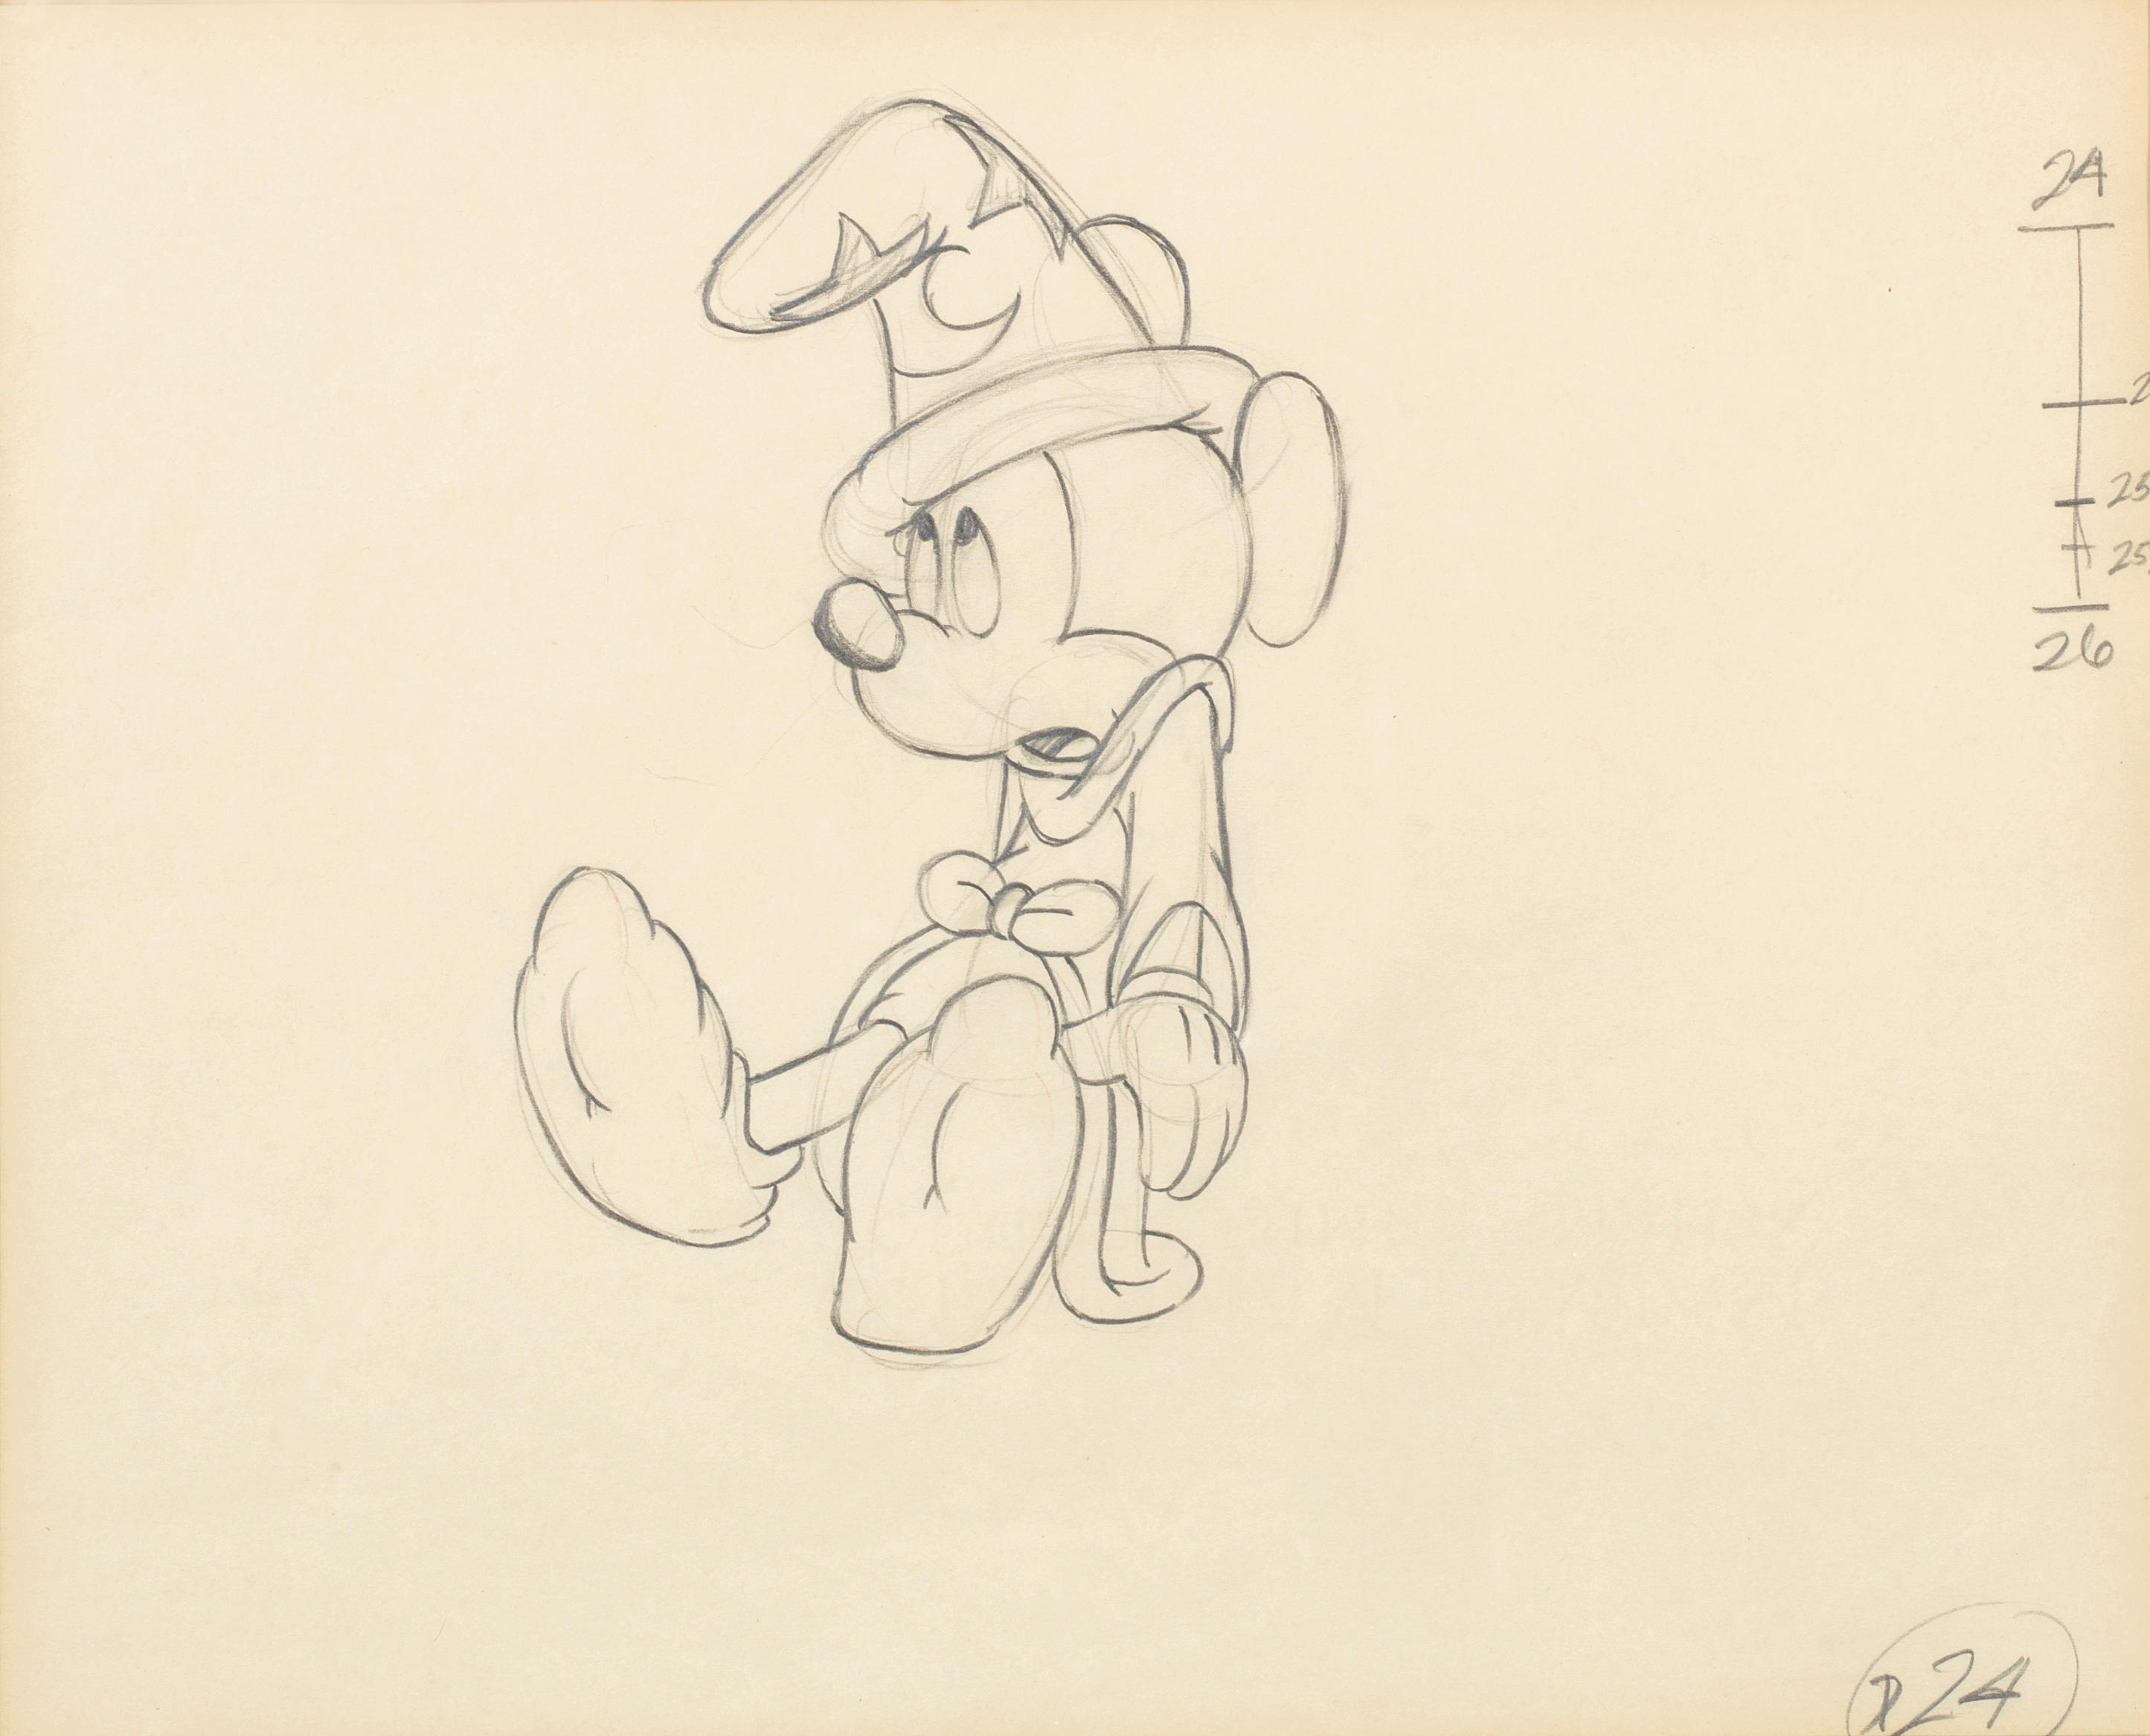 Fantasia: An animation drawing of 'Mickey Mouse' from Fantasia,